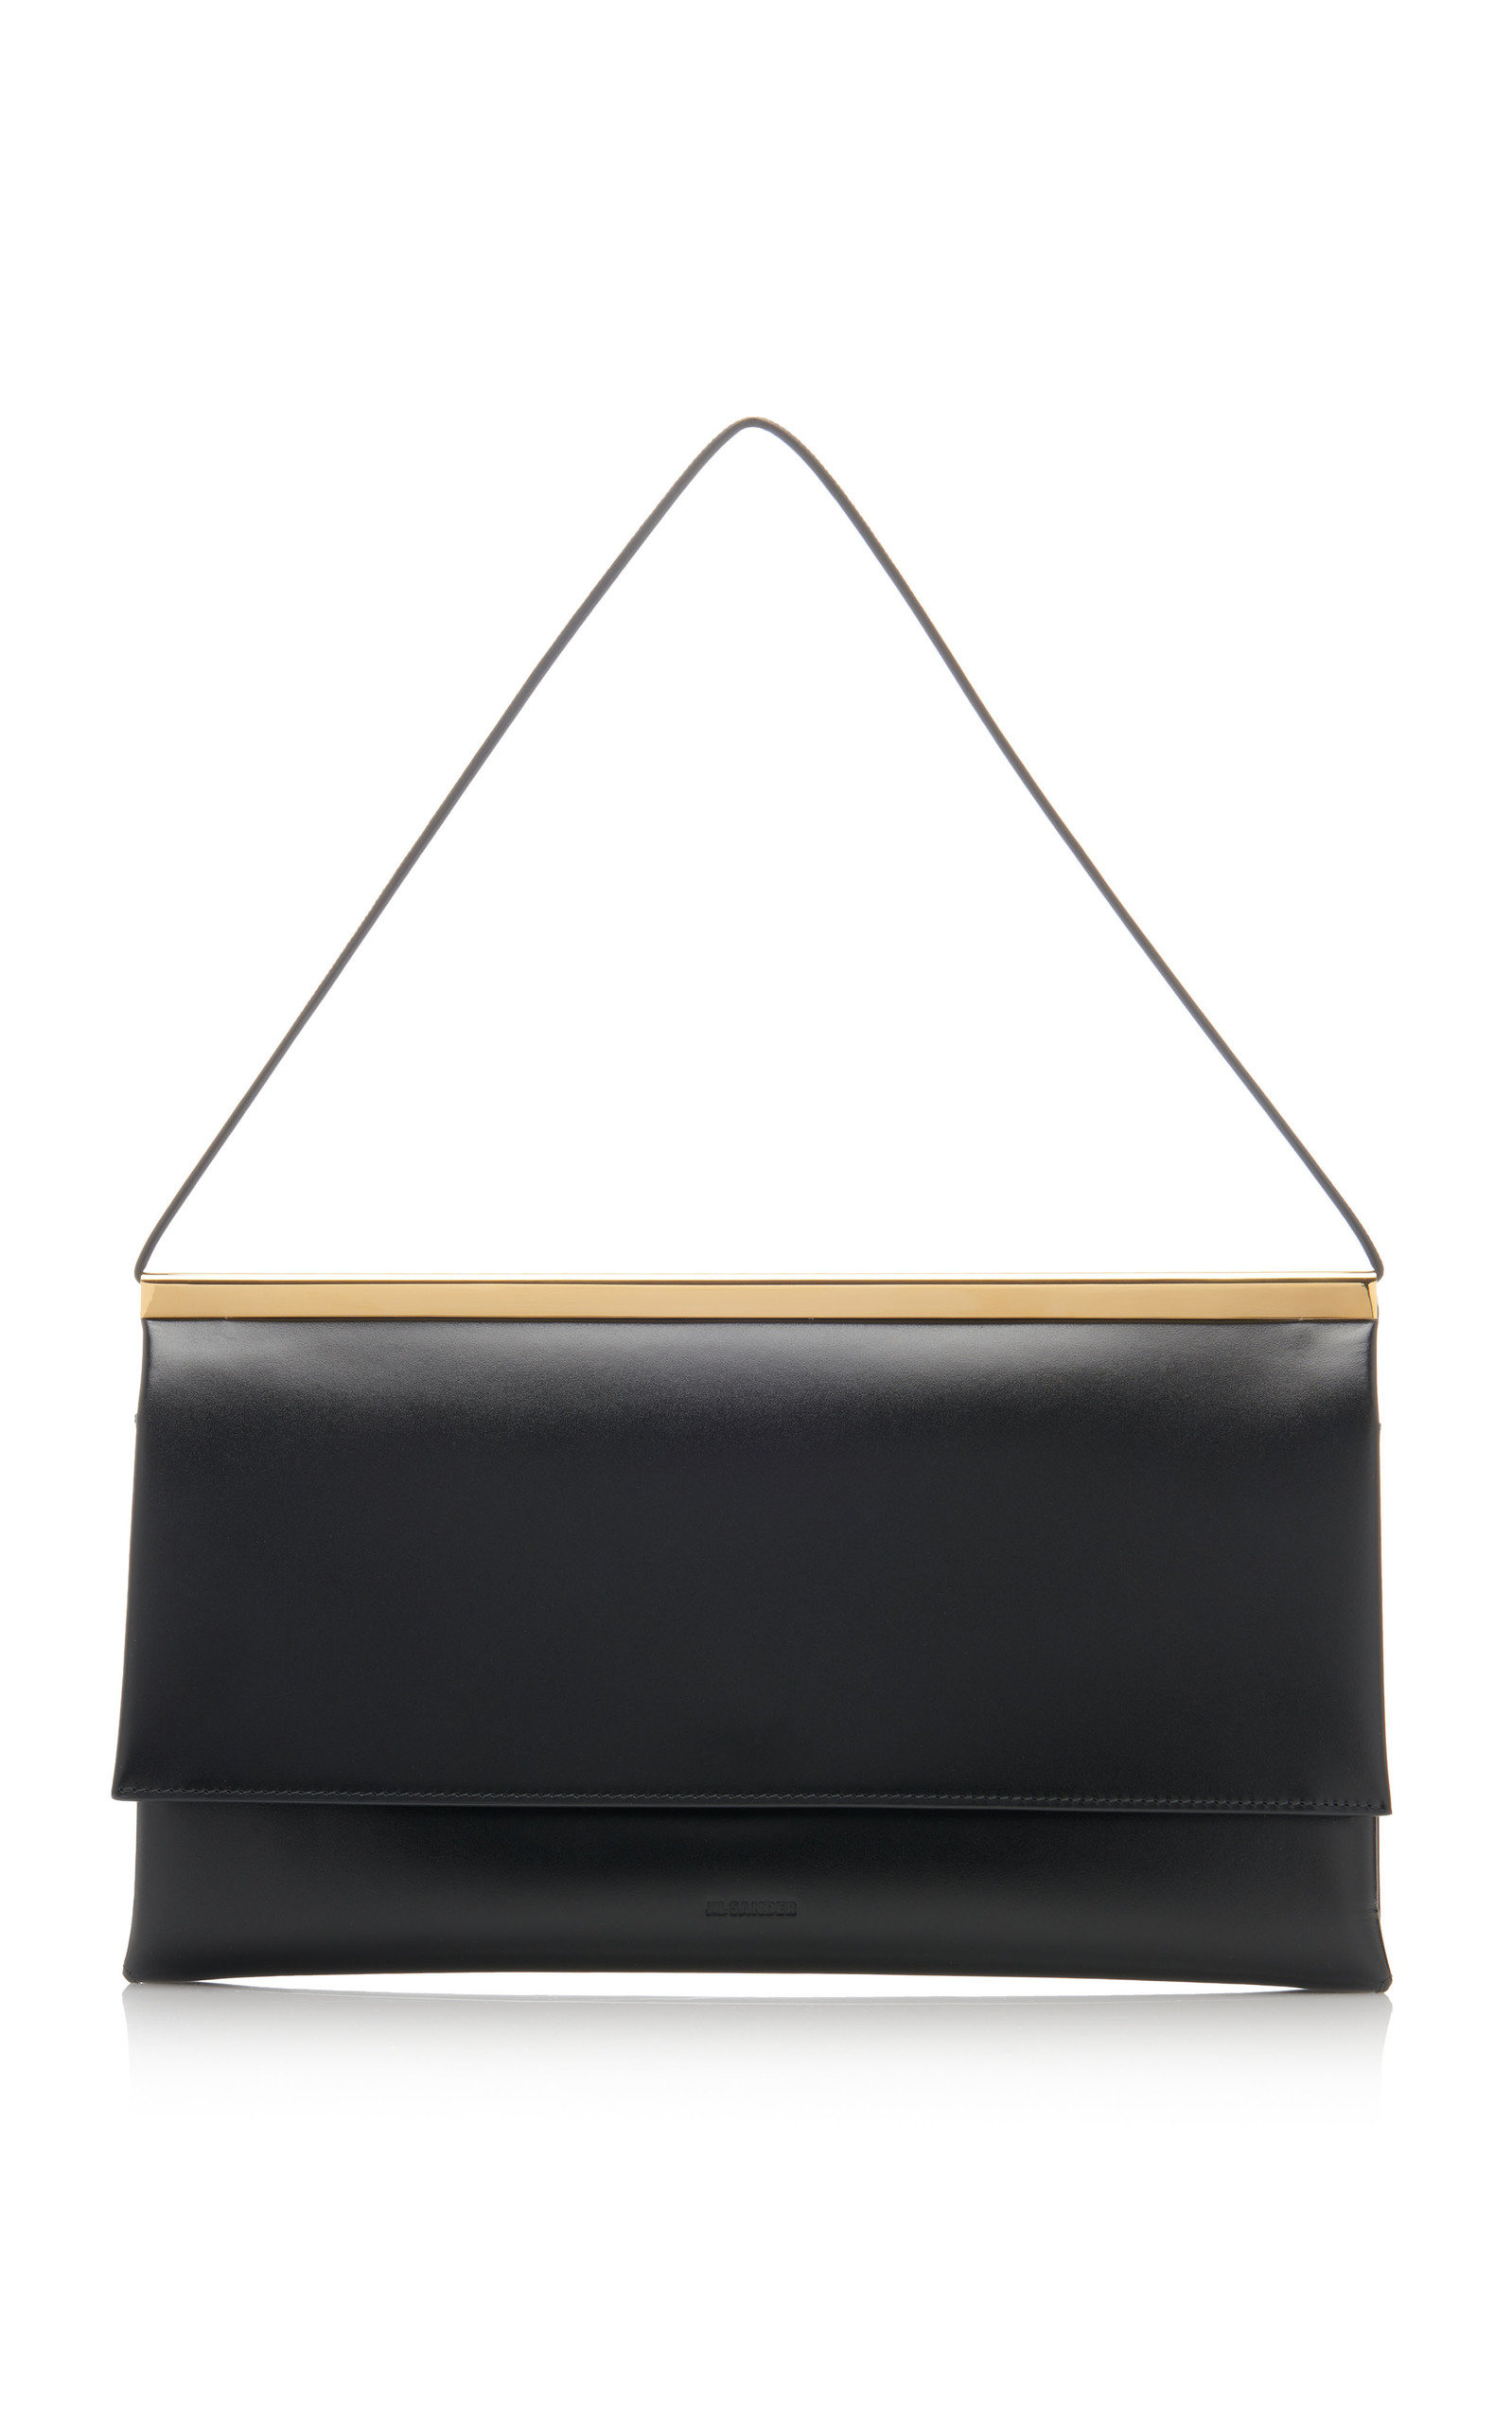 Jil Sander LUCIO LEATHER SHOULDER BAG